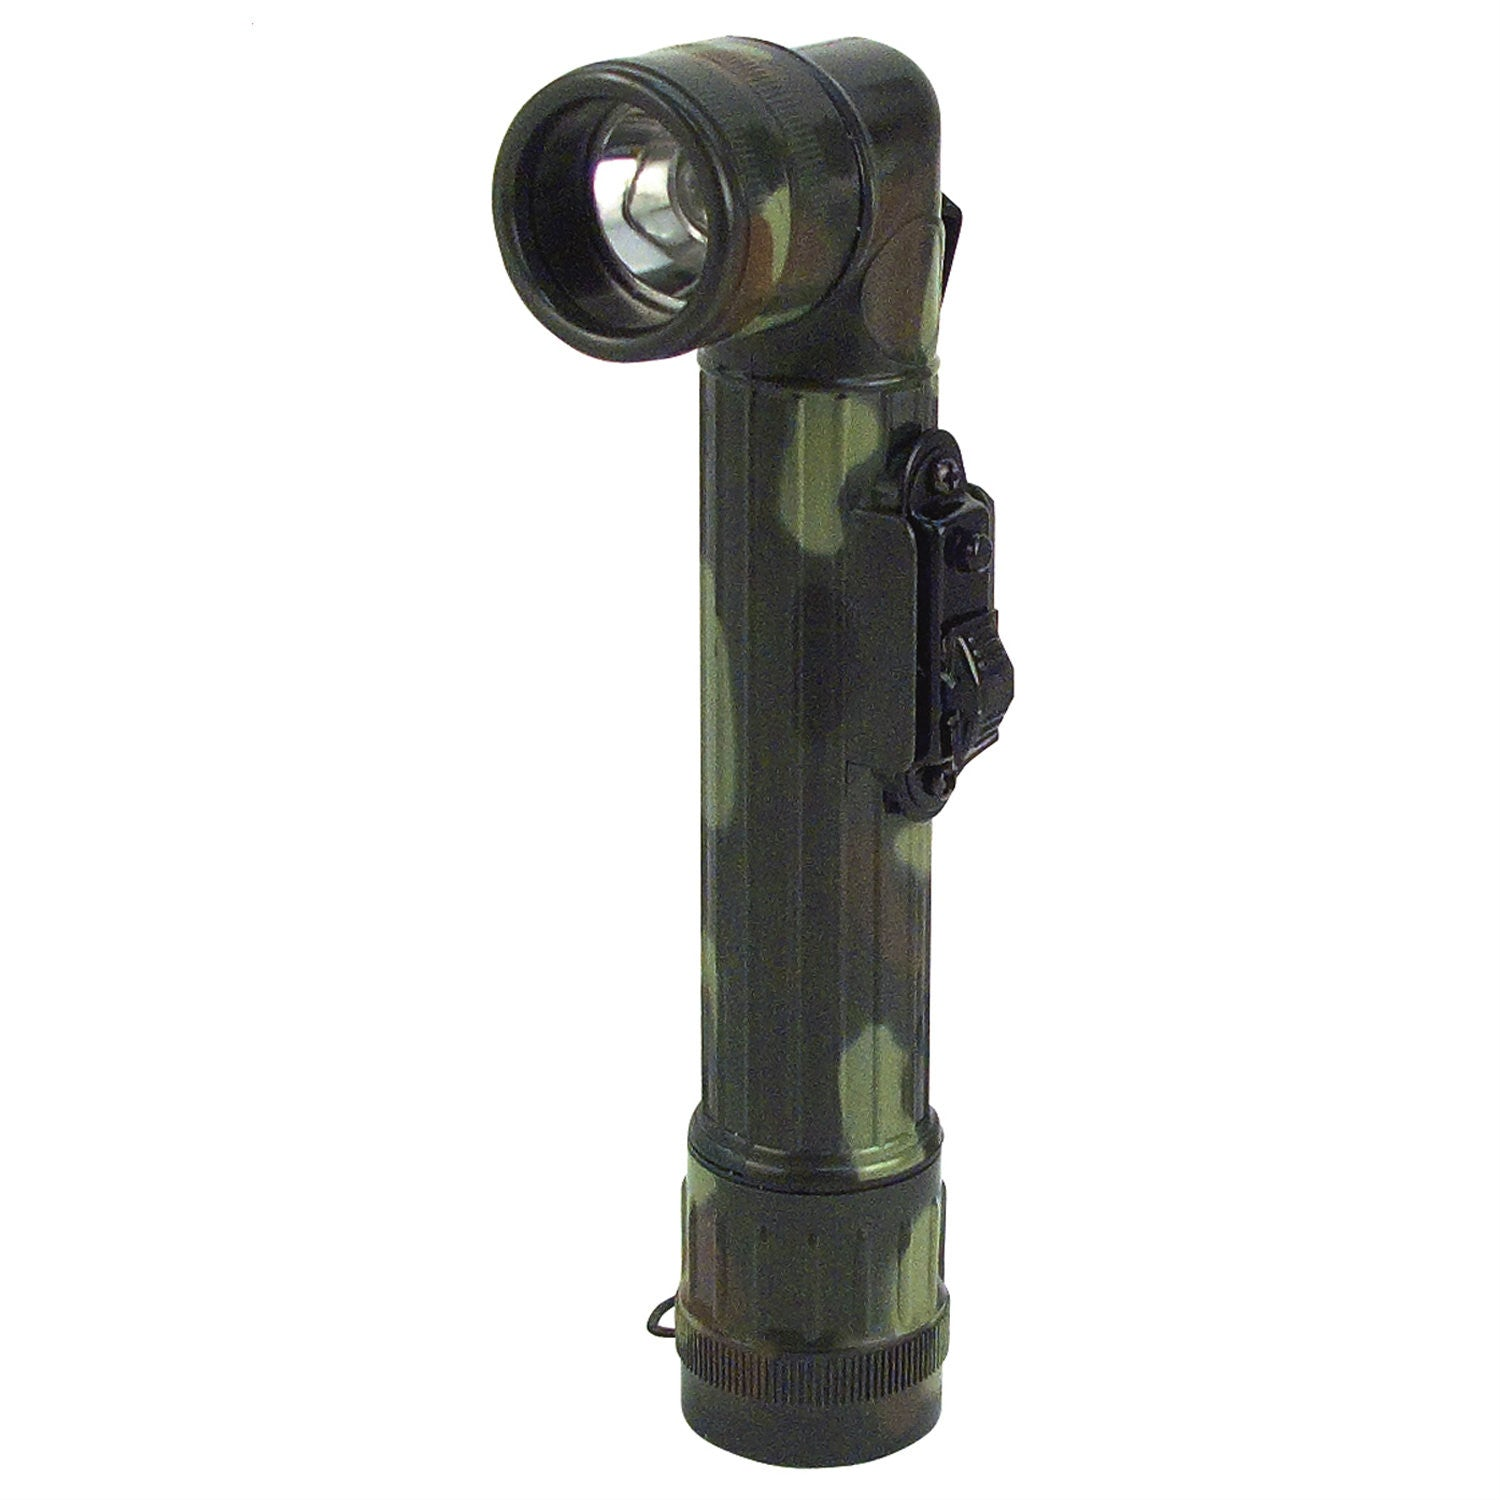 GI Type Mini AA Cell Angle Head Flashlight